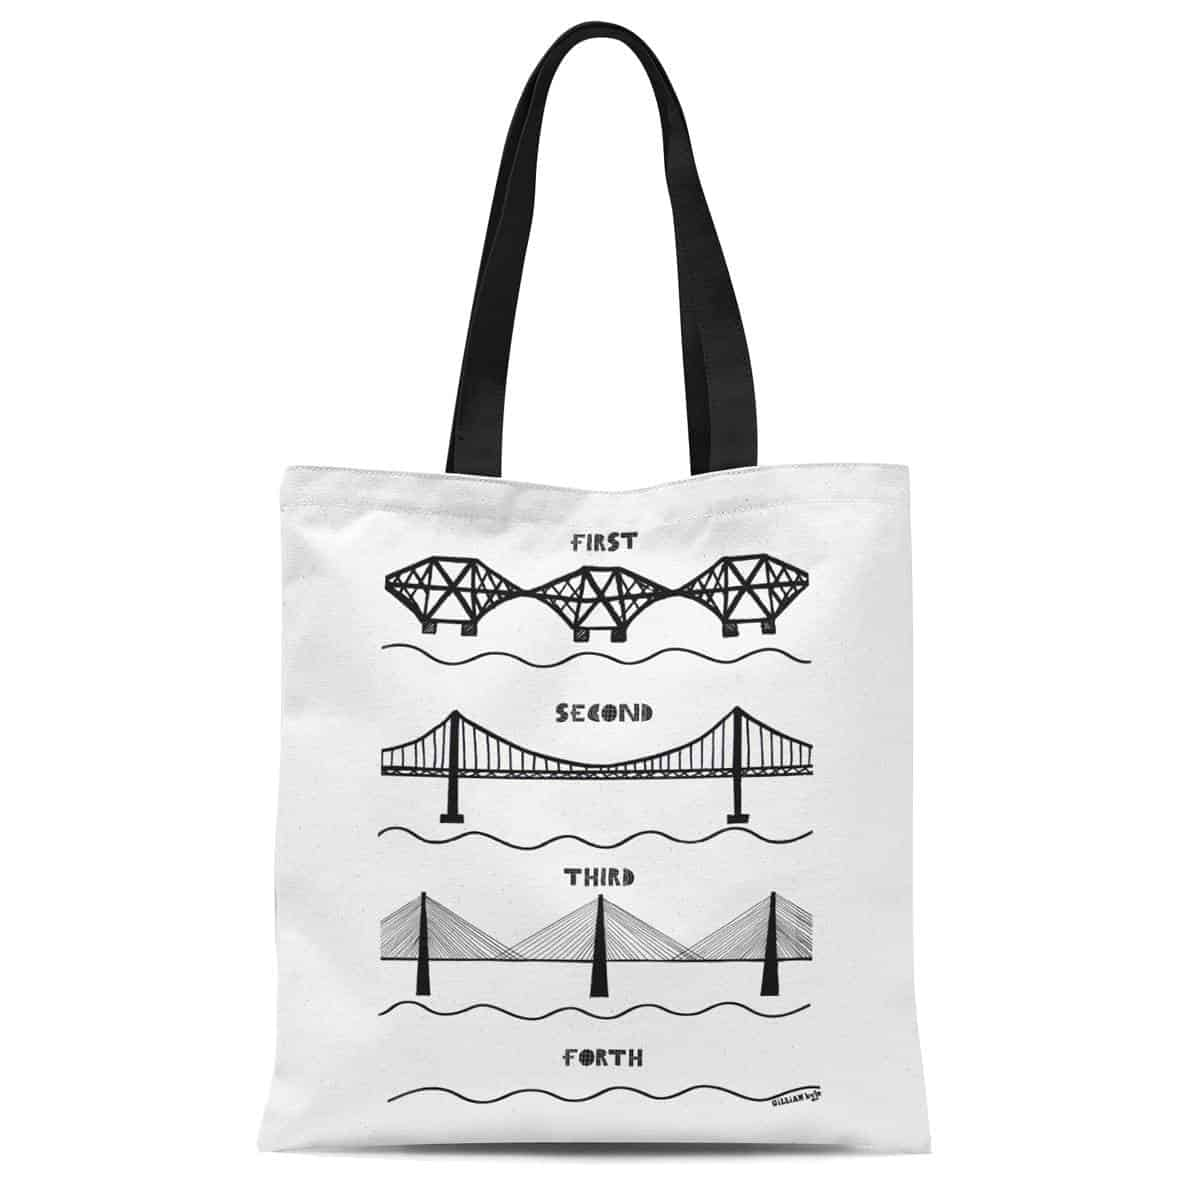 62274b760 Product Information. £12.95. This fun canvas tote ...